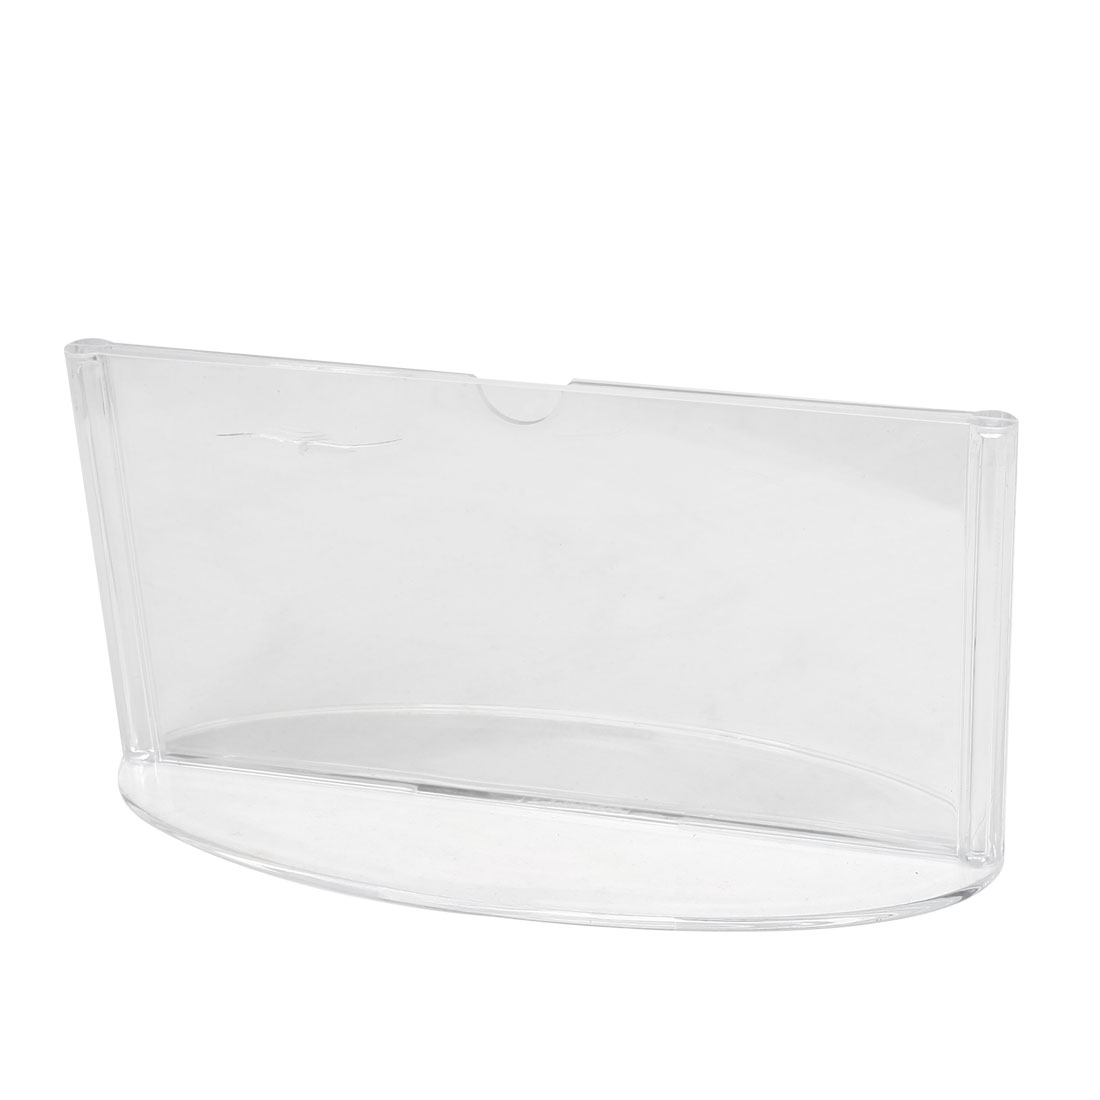 Oval Shapes Bases Clear Plastic Rectangle Table Display Holder 15cm x 7.5cm